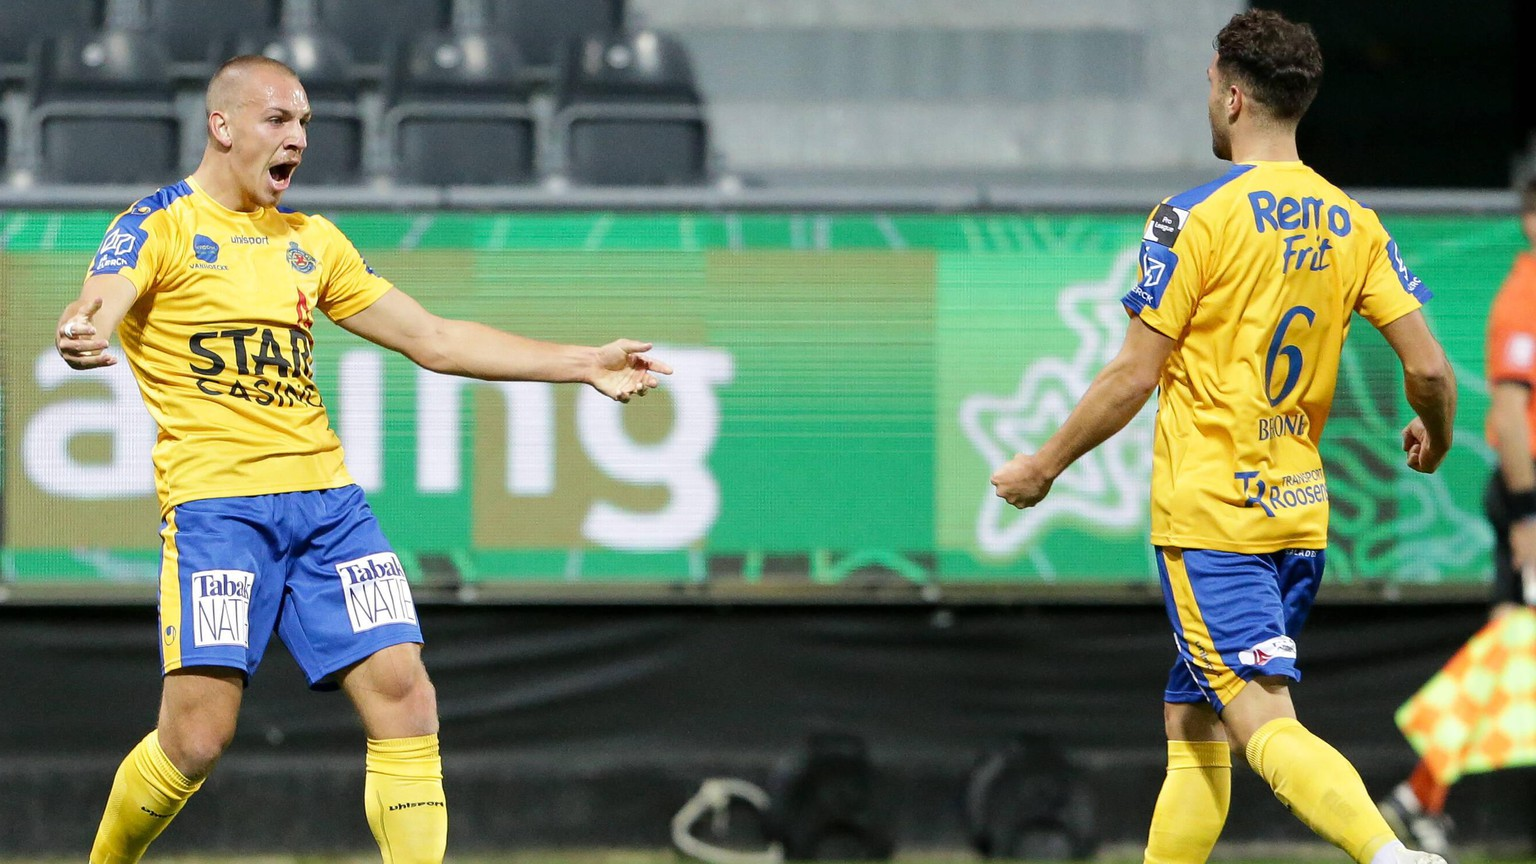 Michael Frey Waasland-Beveren 99 jubelt, freut sich, Jubel, Freude mit Leonard Bertone Waasland-Beveren 6 nach dem Tor zum 0:1 / Fussball, Jupiler Pro League, Divison 1A, Belgien, 12. Spieltag, Saison 2020-2021 / 07.11.2020 / KAS Eupen - Waasland-Beveren / Kehrwegstadion, Eupen / *** Michael Frey Waasland Beveren 99 cheers, rejoices, joy with Leonard Bertone Waasland Beveren 6 after the goal of 0 1 Football, Jupiler Pro League, Division 1A, Belgium, 12 Matchday, Season 2020 2021 07 11 2020 KAS Eupen Waasland Beveren Kehrwegstadion, Eupen PUBLICATIONxNOTxINxLUX